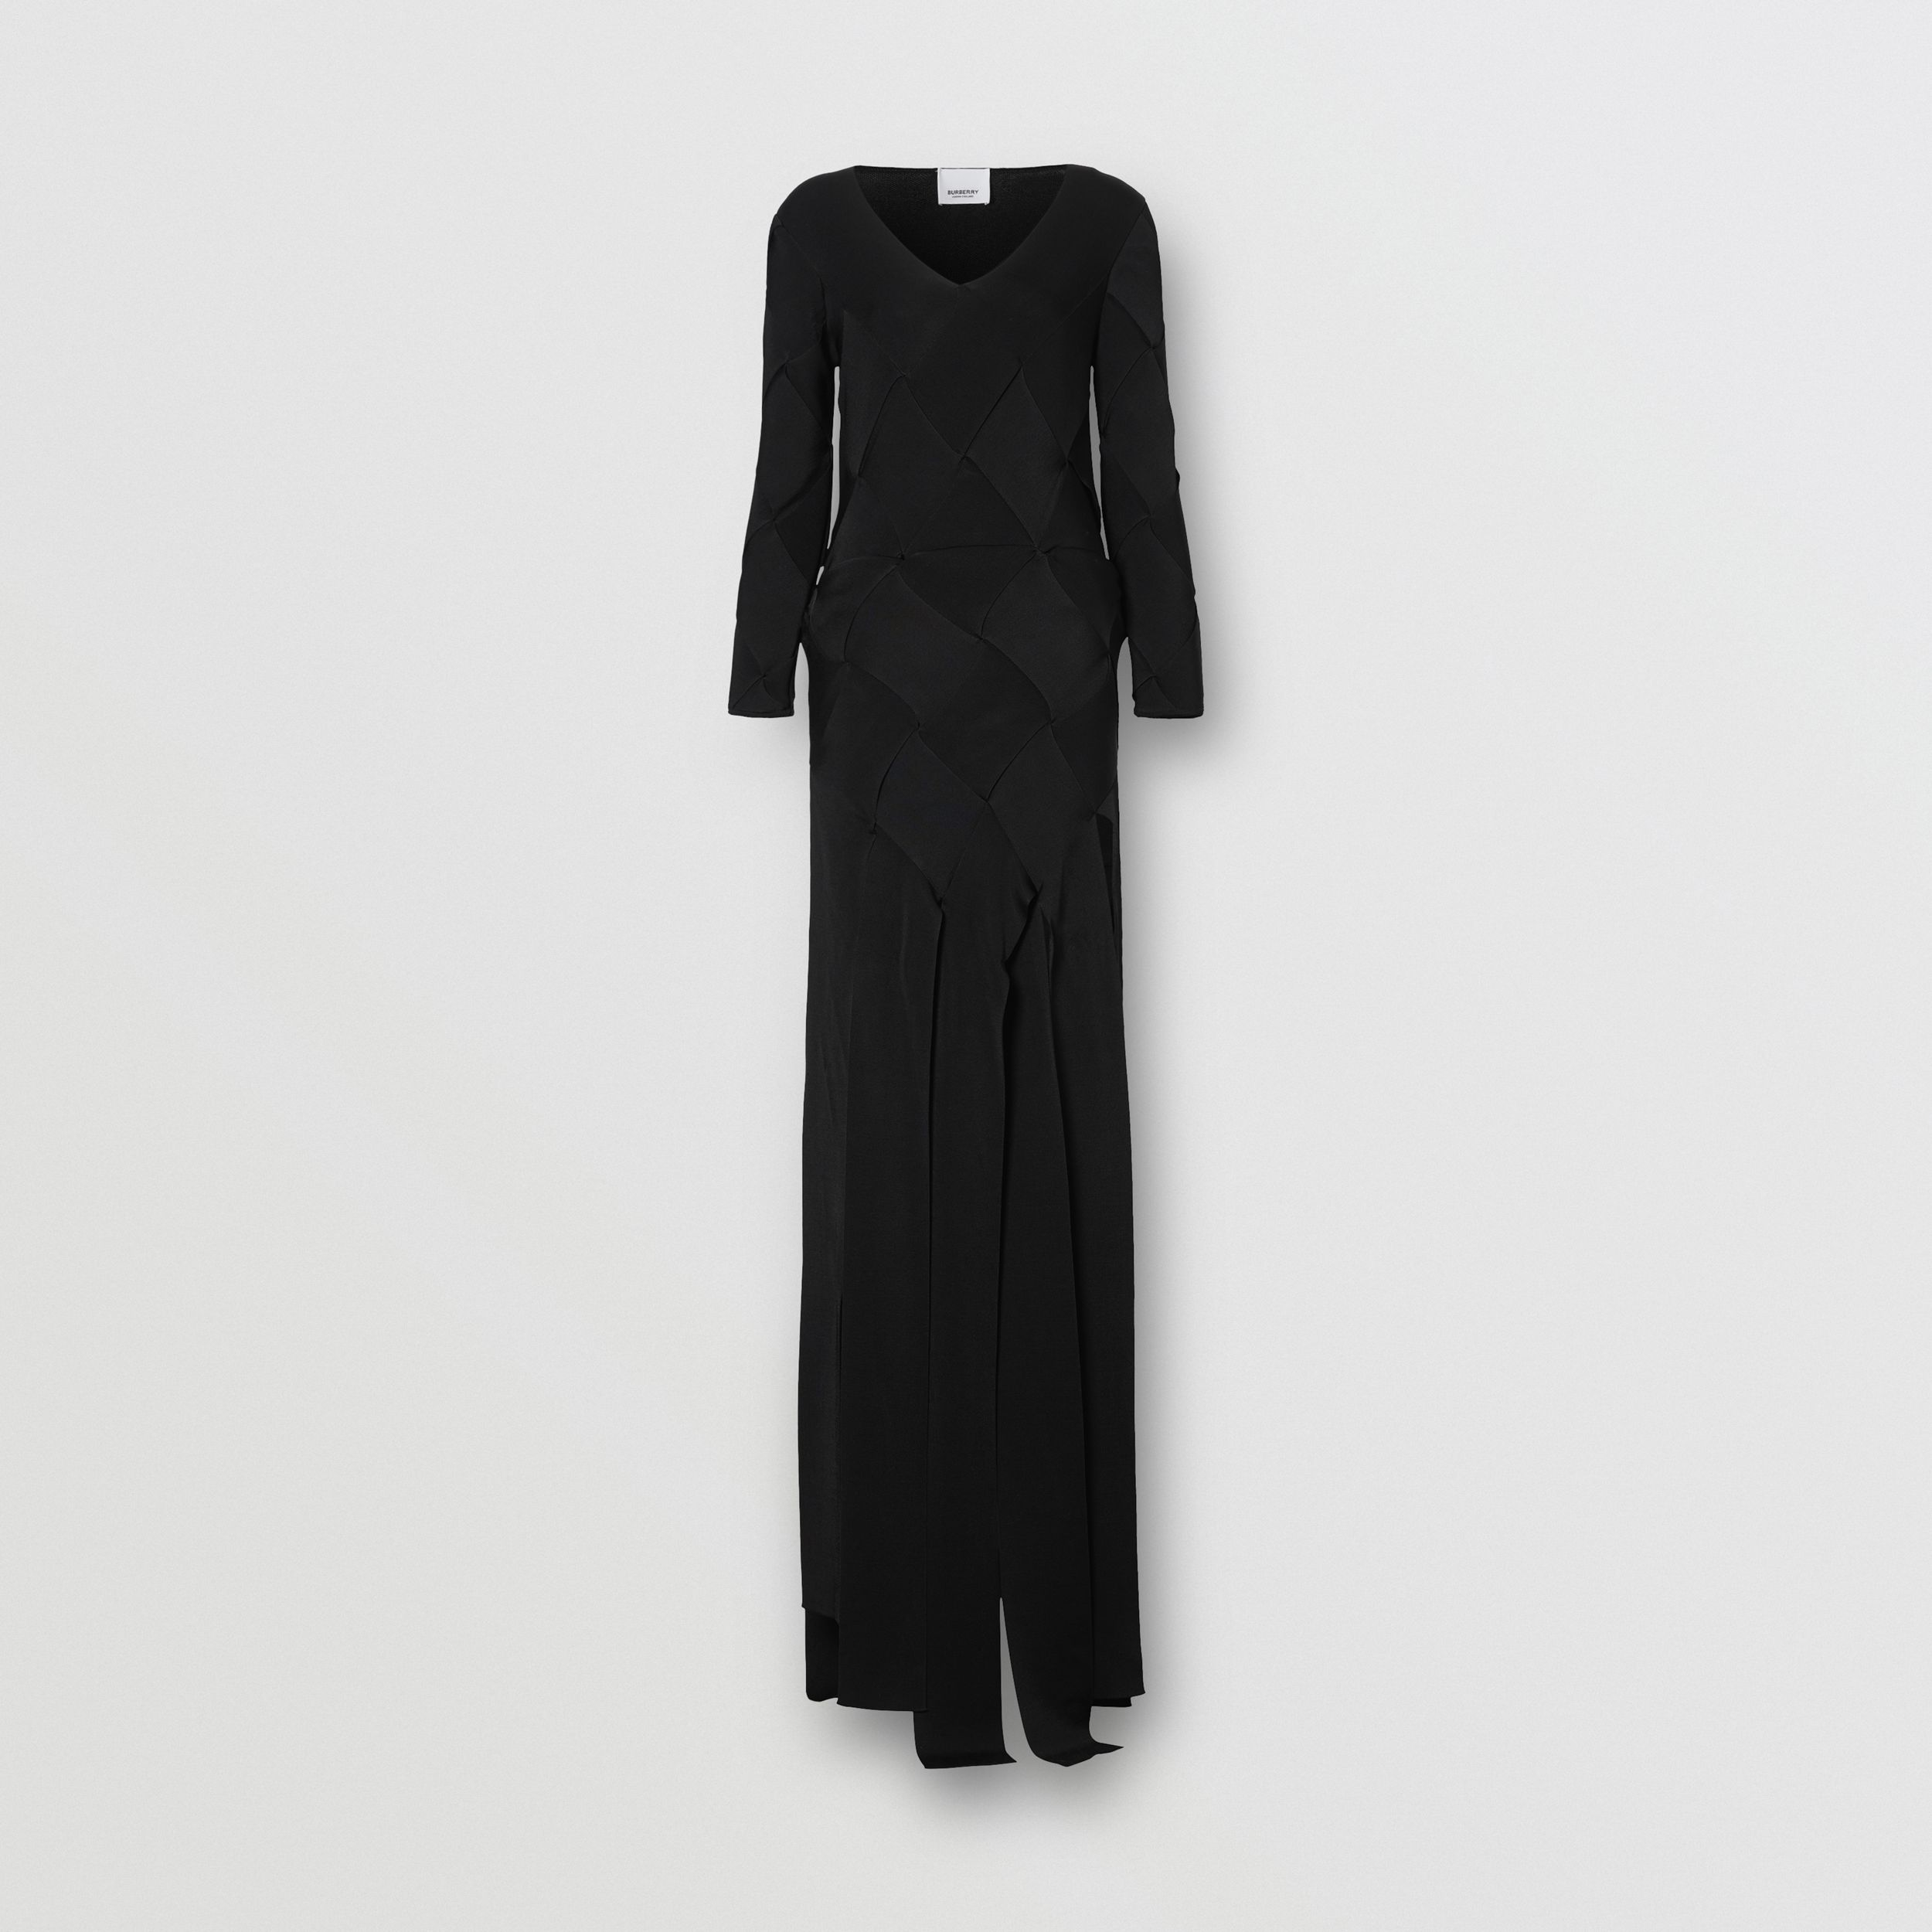 Long-sleeve Panelled Knit Gown in Black - Women | Burberry Canada - 4